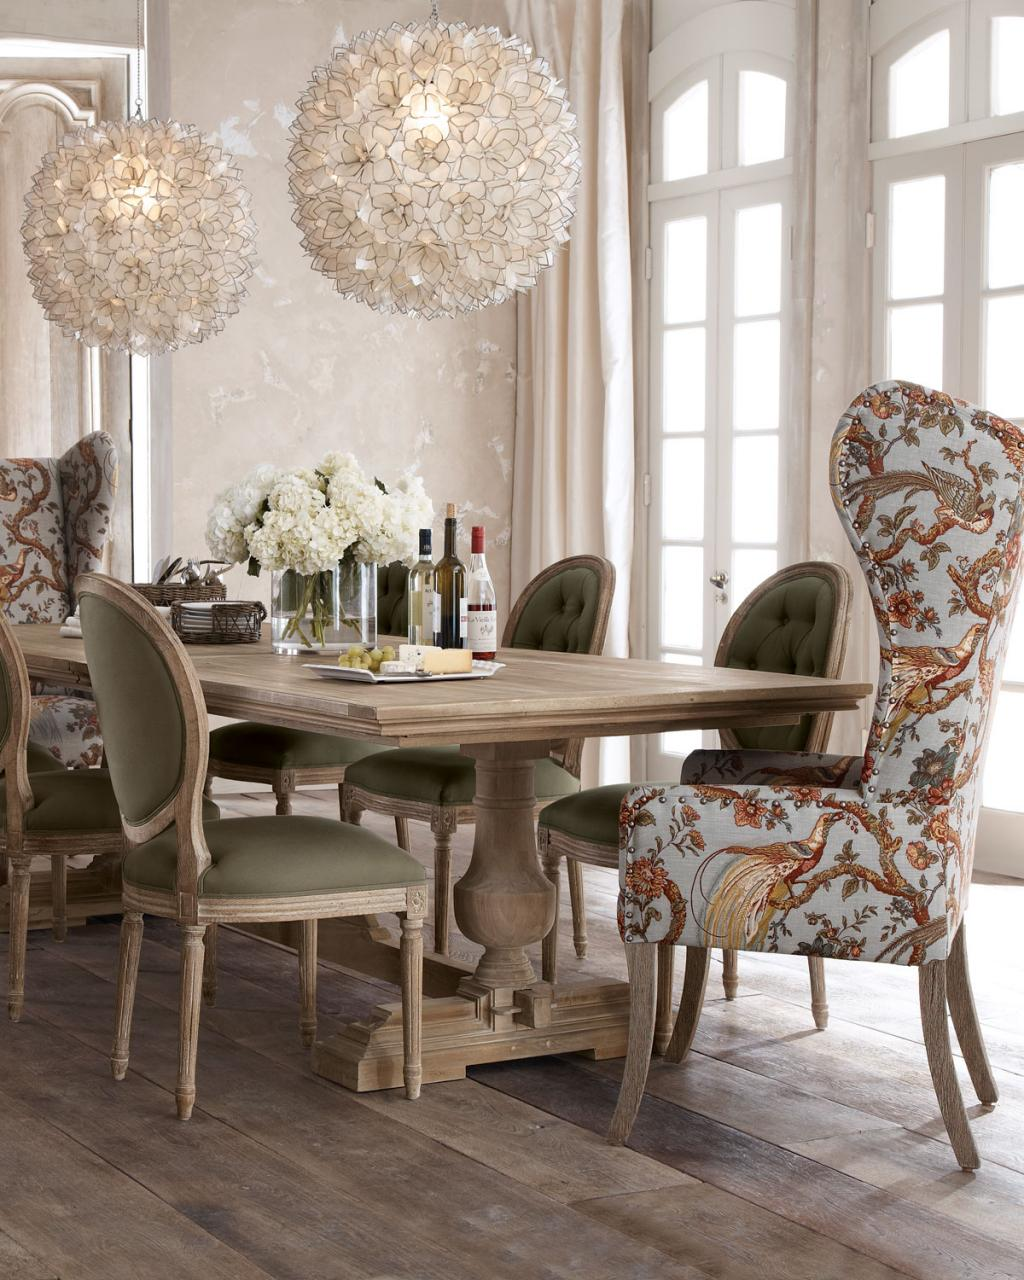 mesmerizing-modern-royal-farmhouse-dining-table-with-unique-round-chandeliers-and-floral-chair